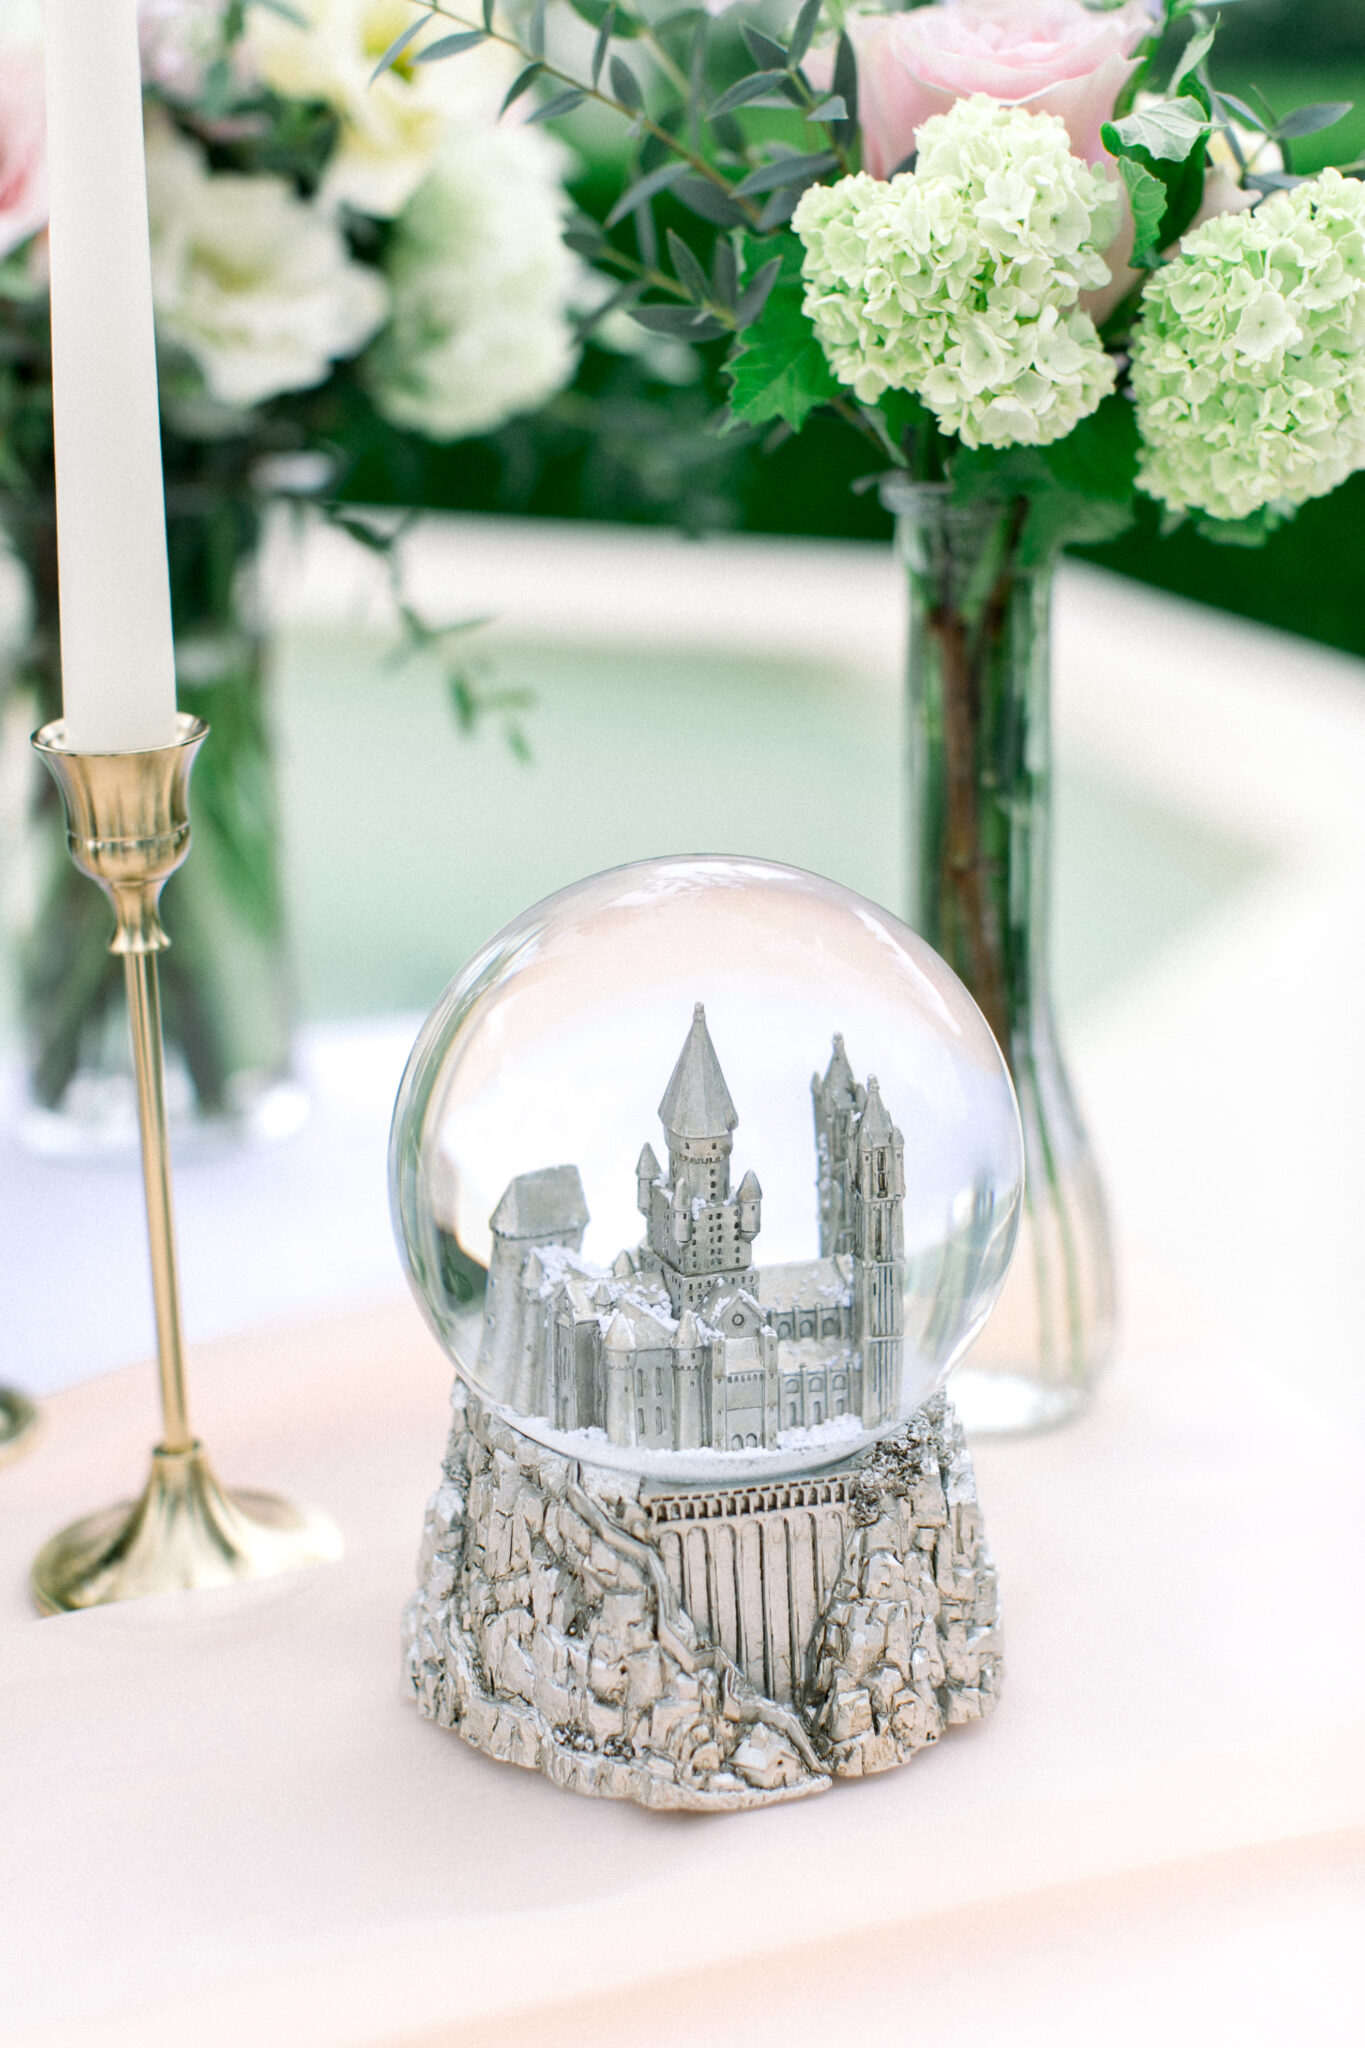 castle snow globe on romantic table